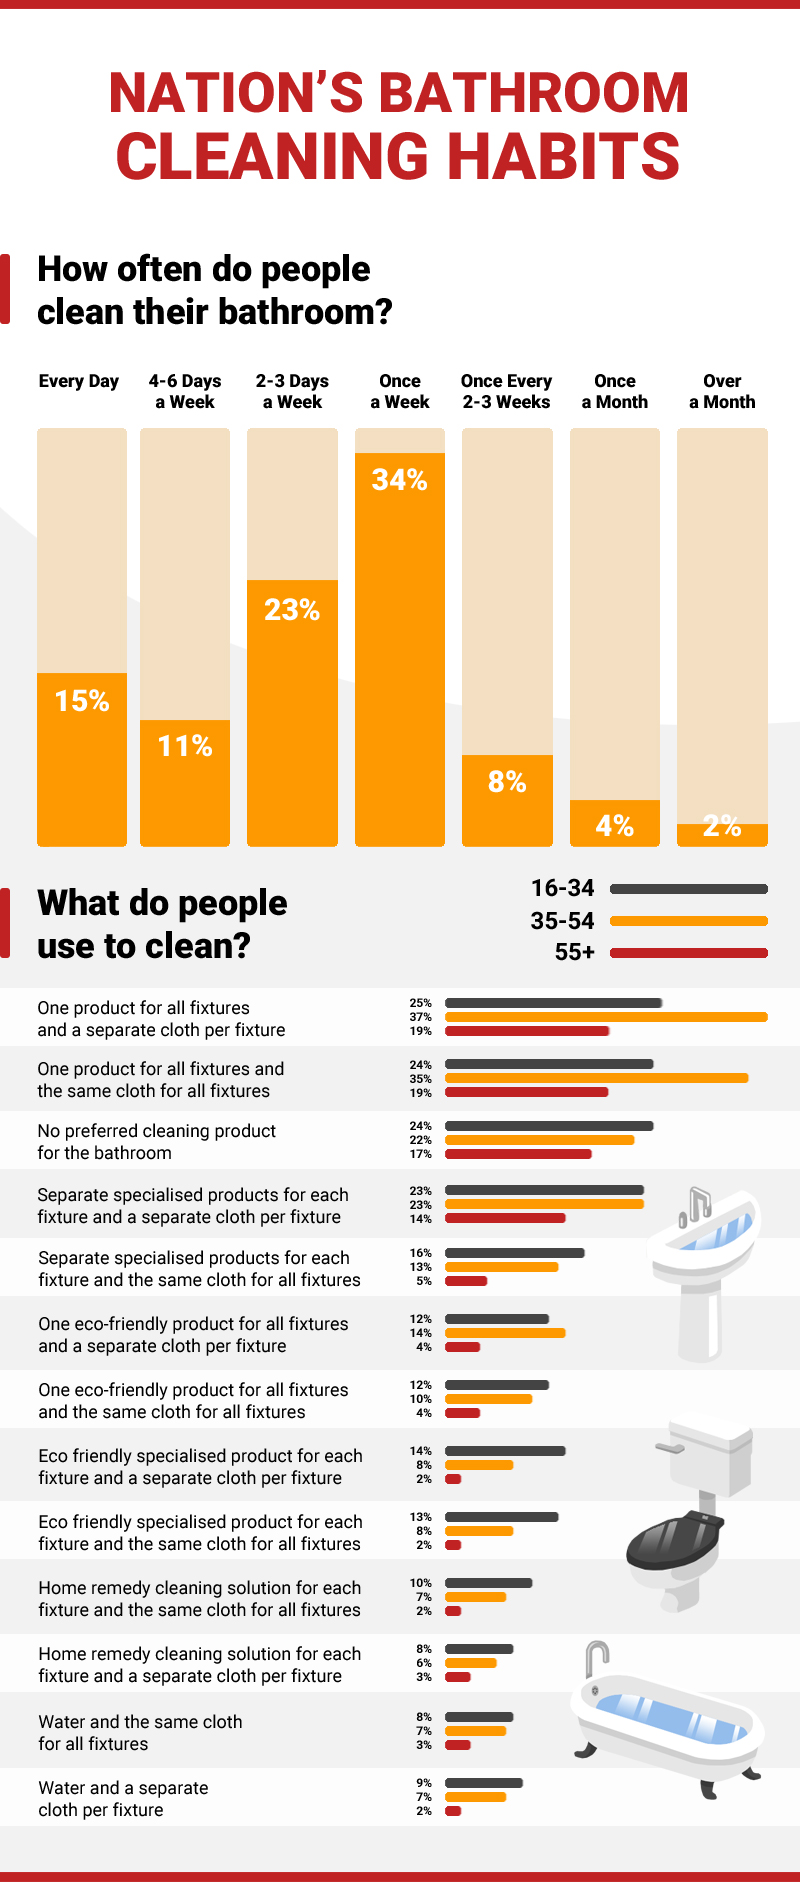 Infographic showing survey data in response to the question 'How often do people clean their bathroom?'